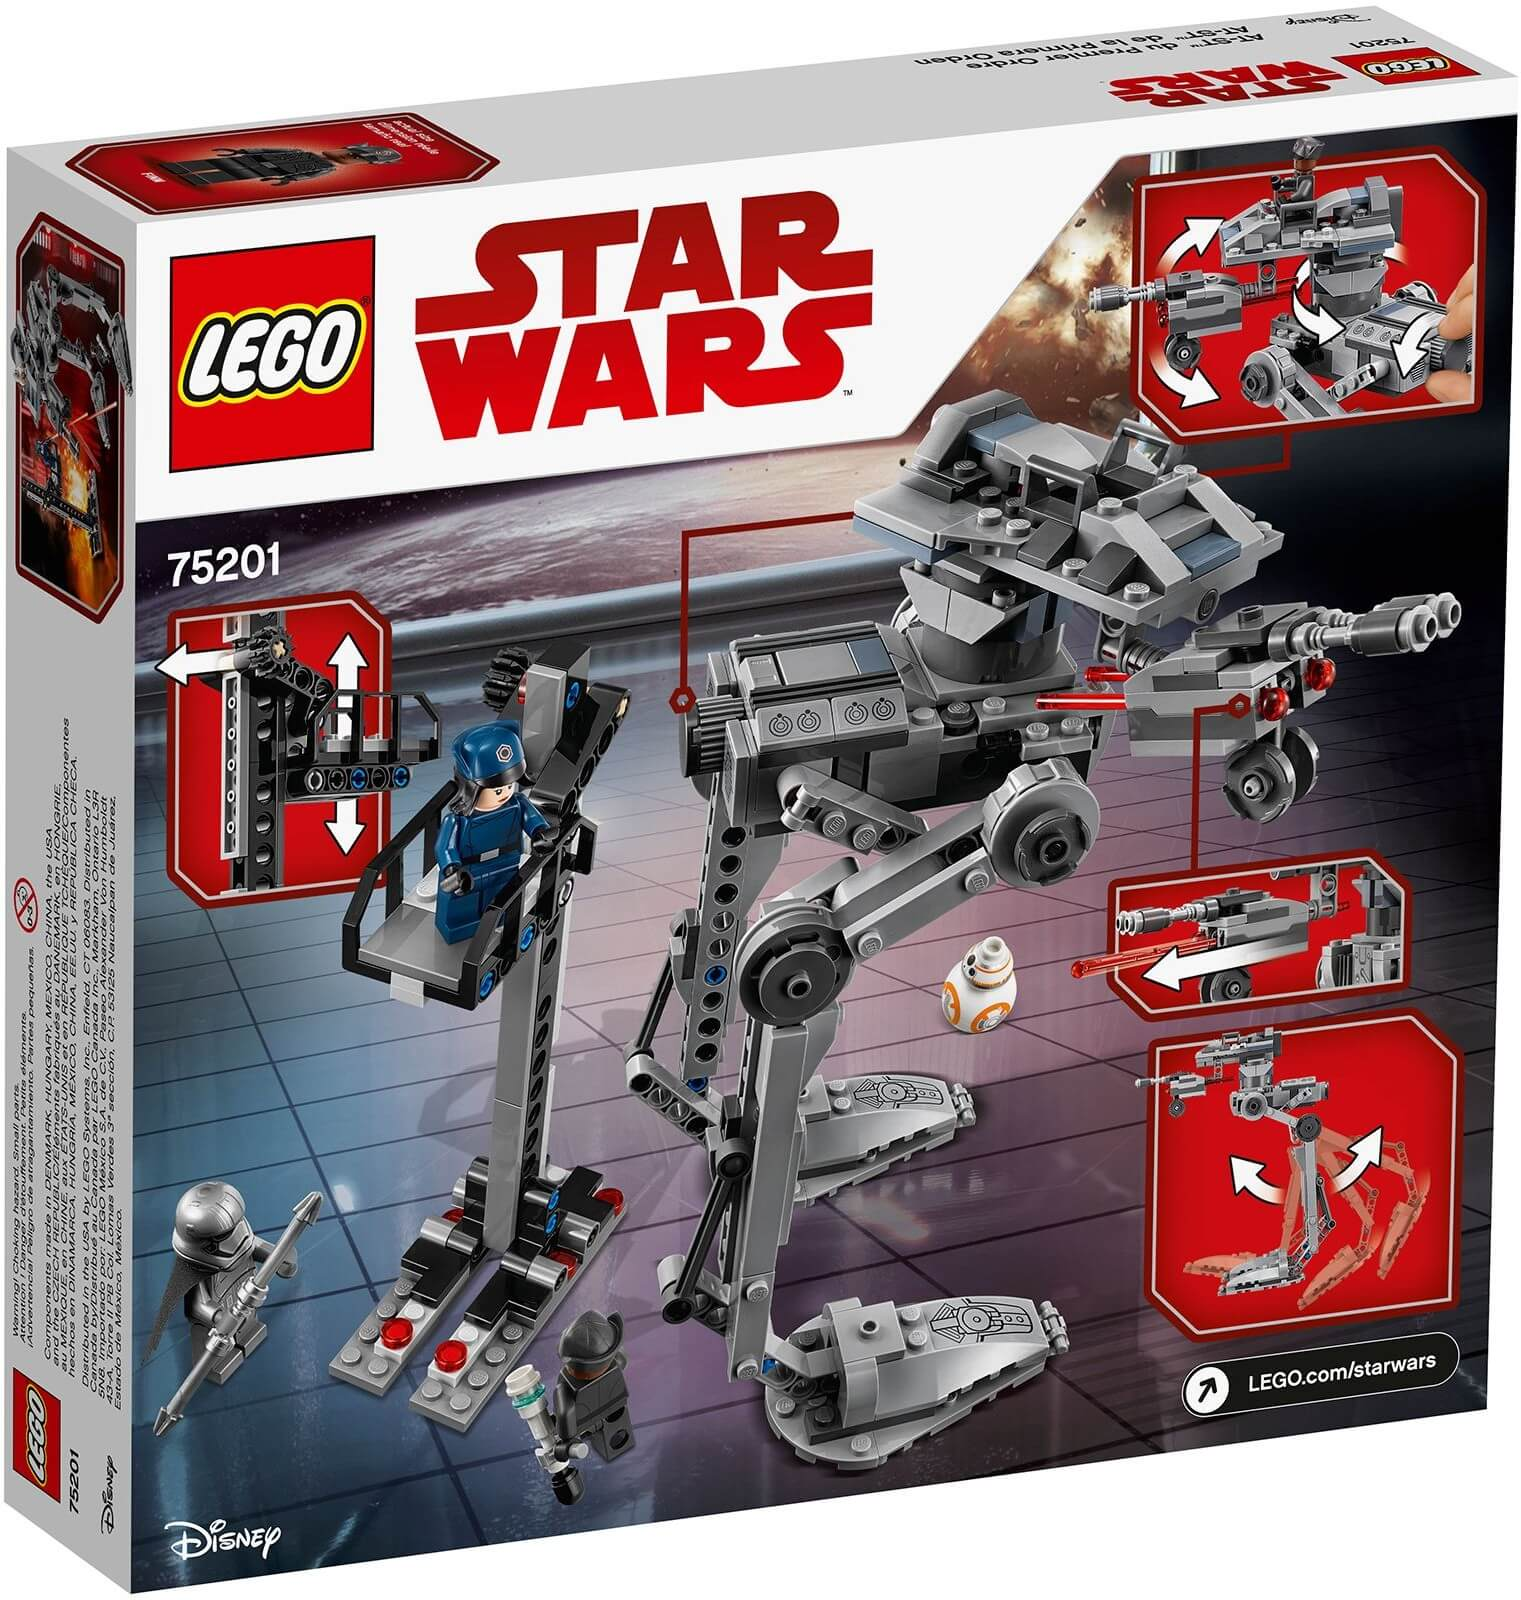 Mua đồ chơi LEGO 75201 - LEGO Star Wars 75201 - AT-ST Robot Do Thám First Order (LEGO Star Wars 75201 First Order AT-ST)